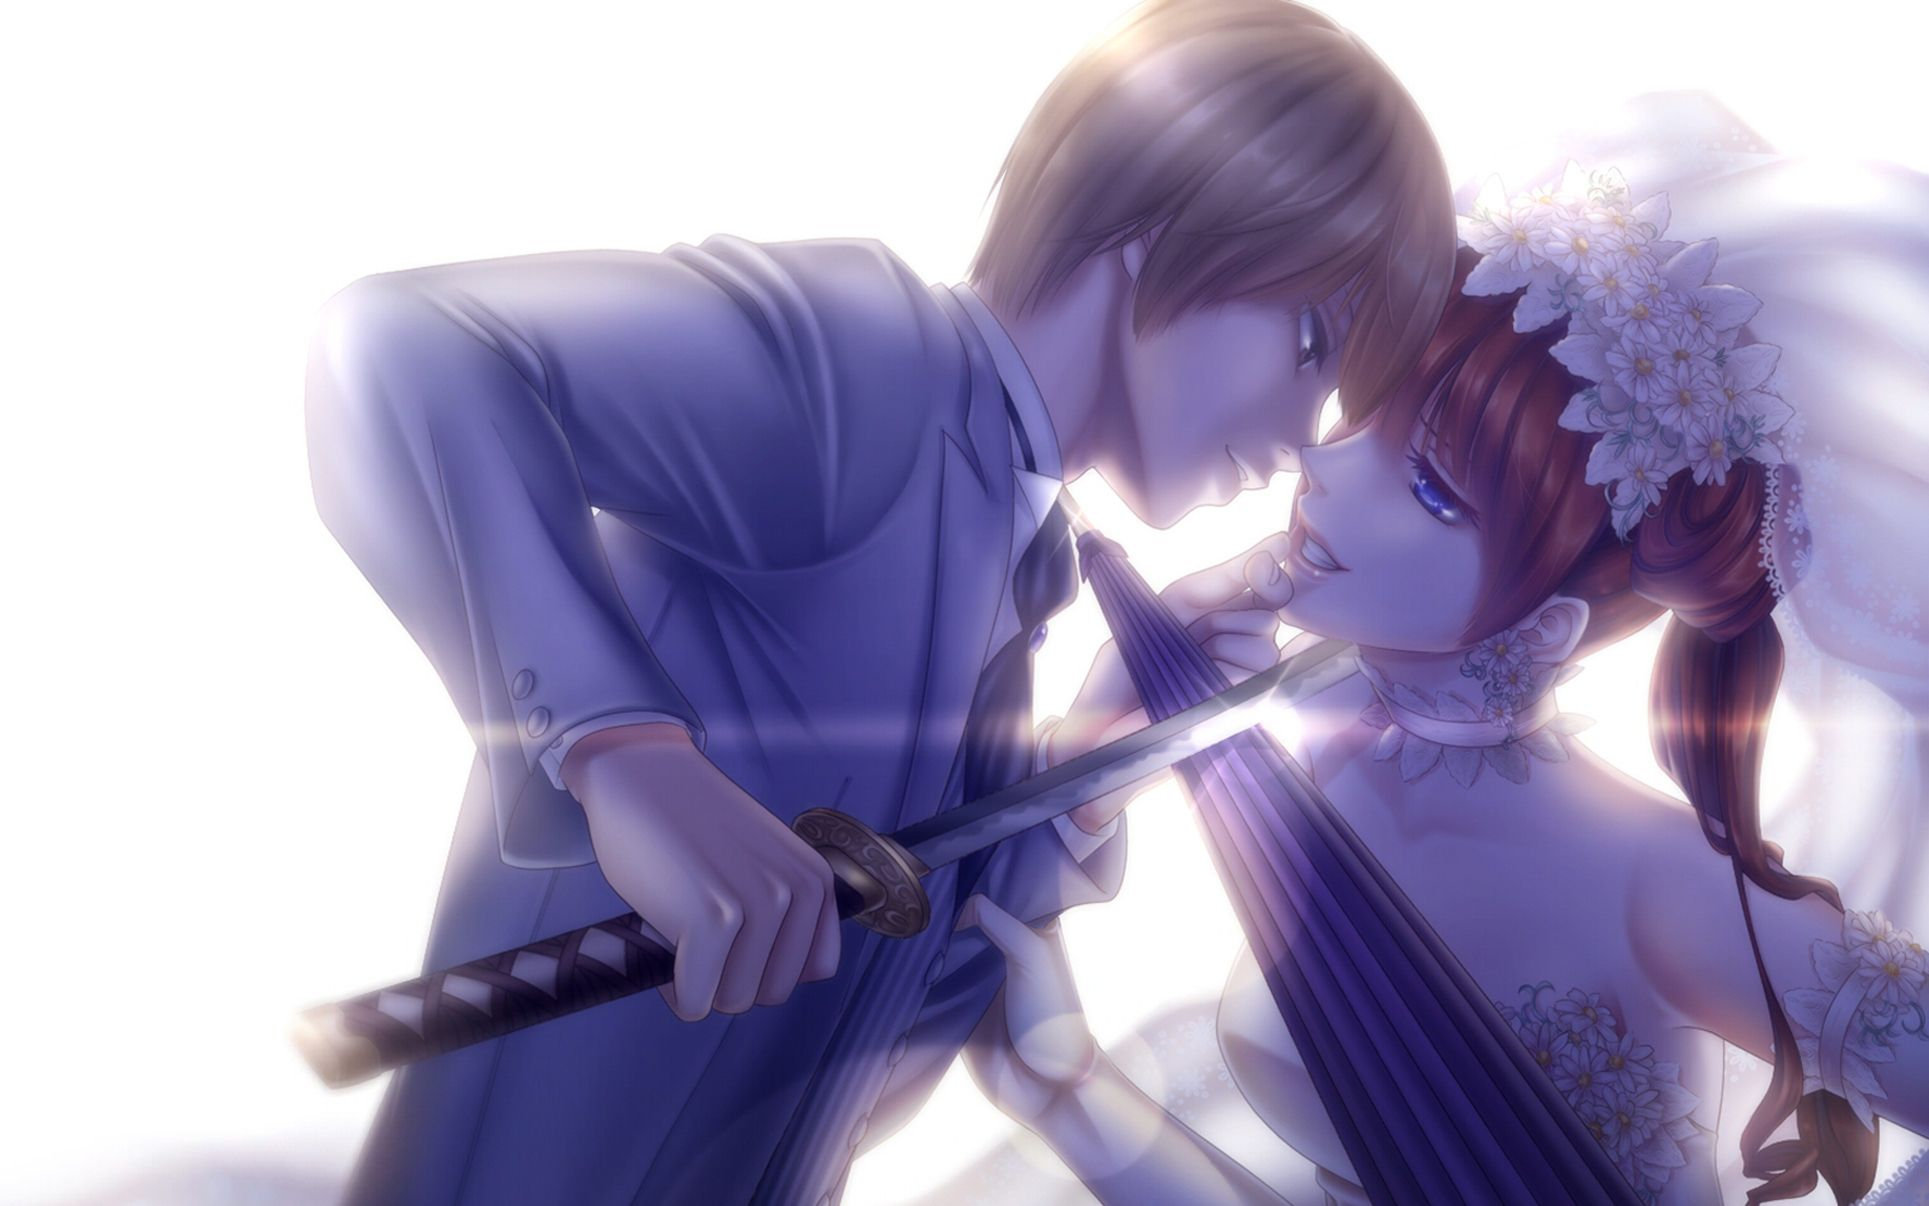 Cute Anime Couple Wallpaper Posted By Samantha Johnson